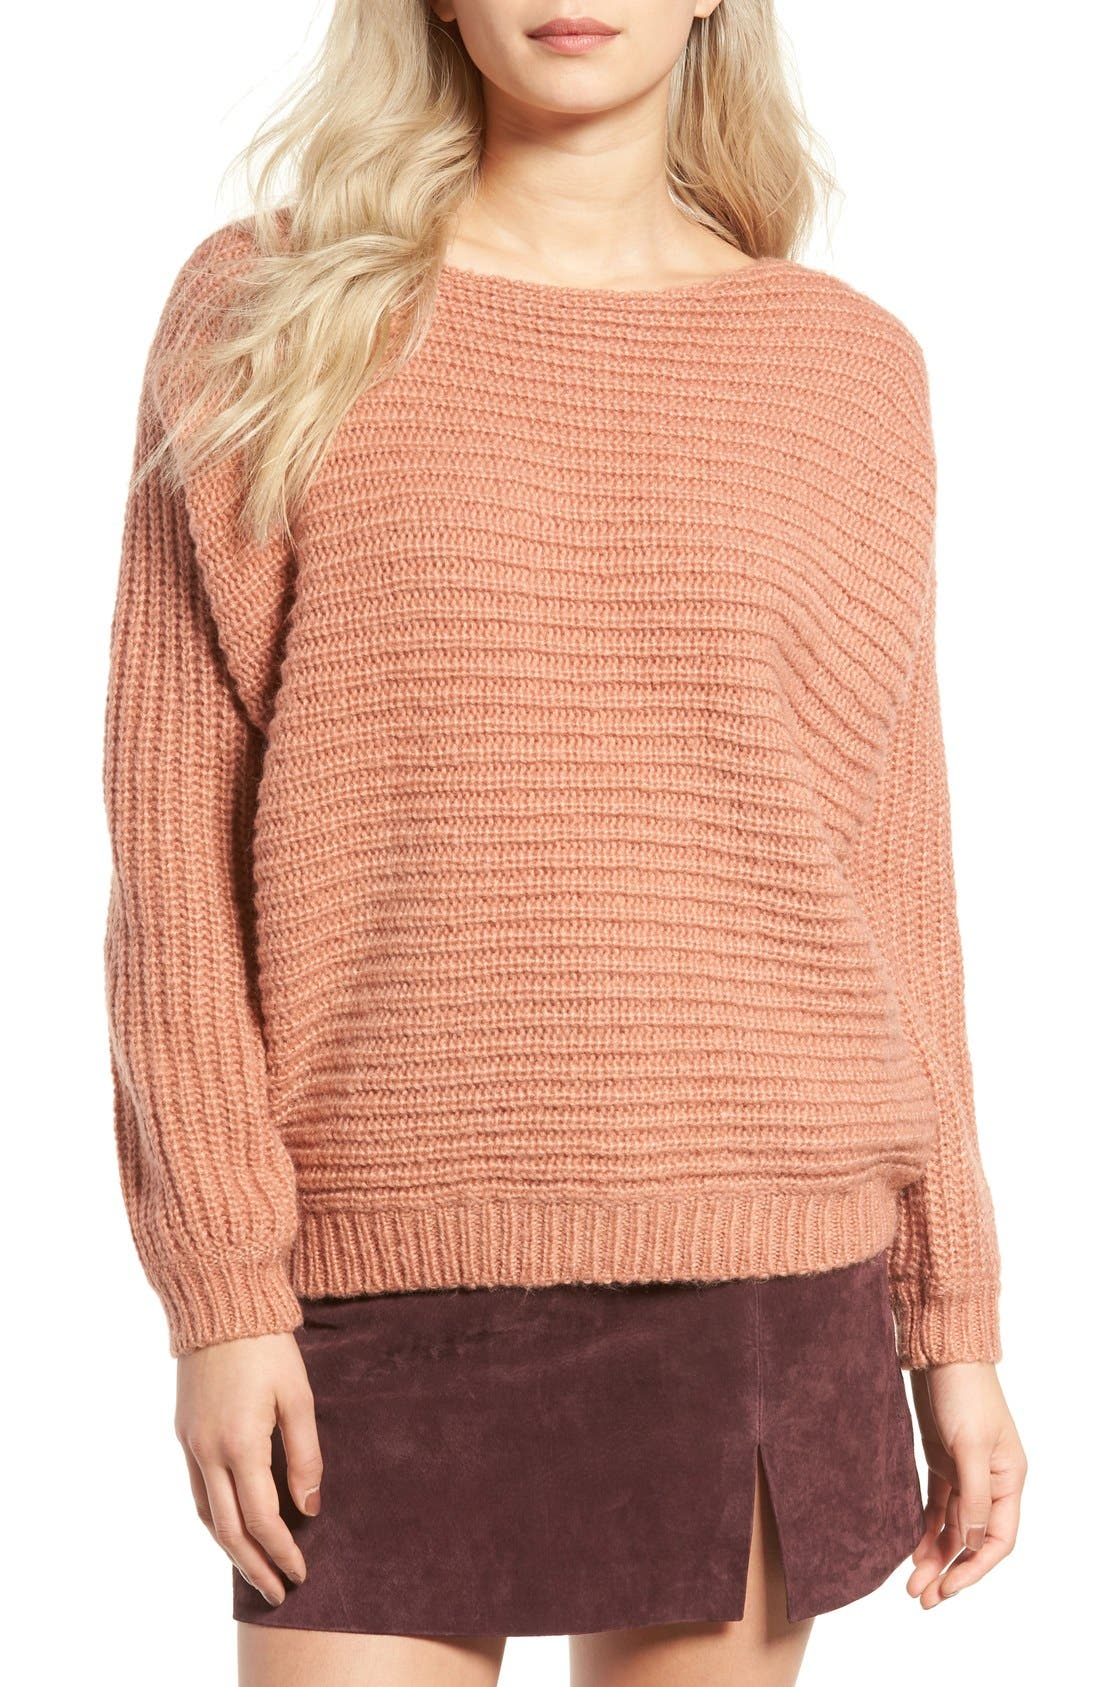 Alternate Image 1 Selected - Glamorous Open Back Boyfriend Sweater